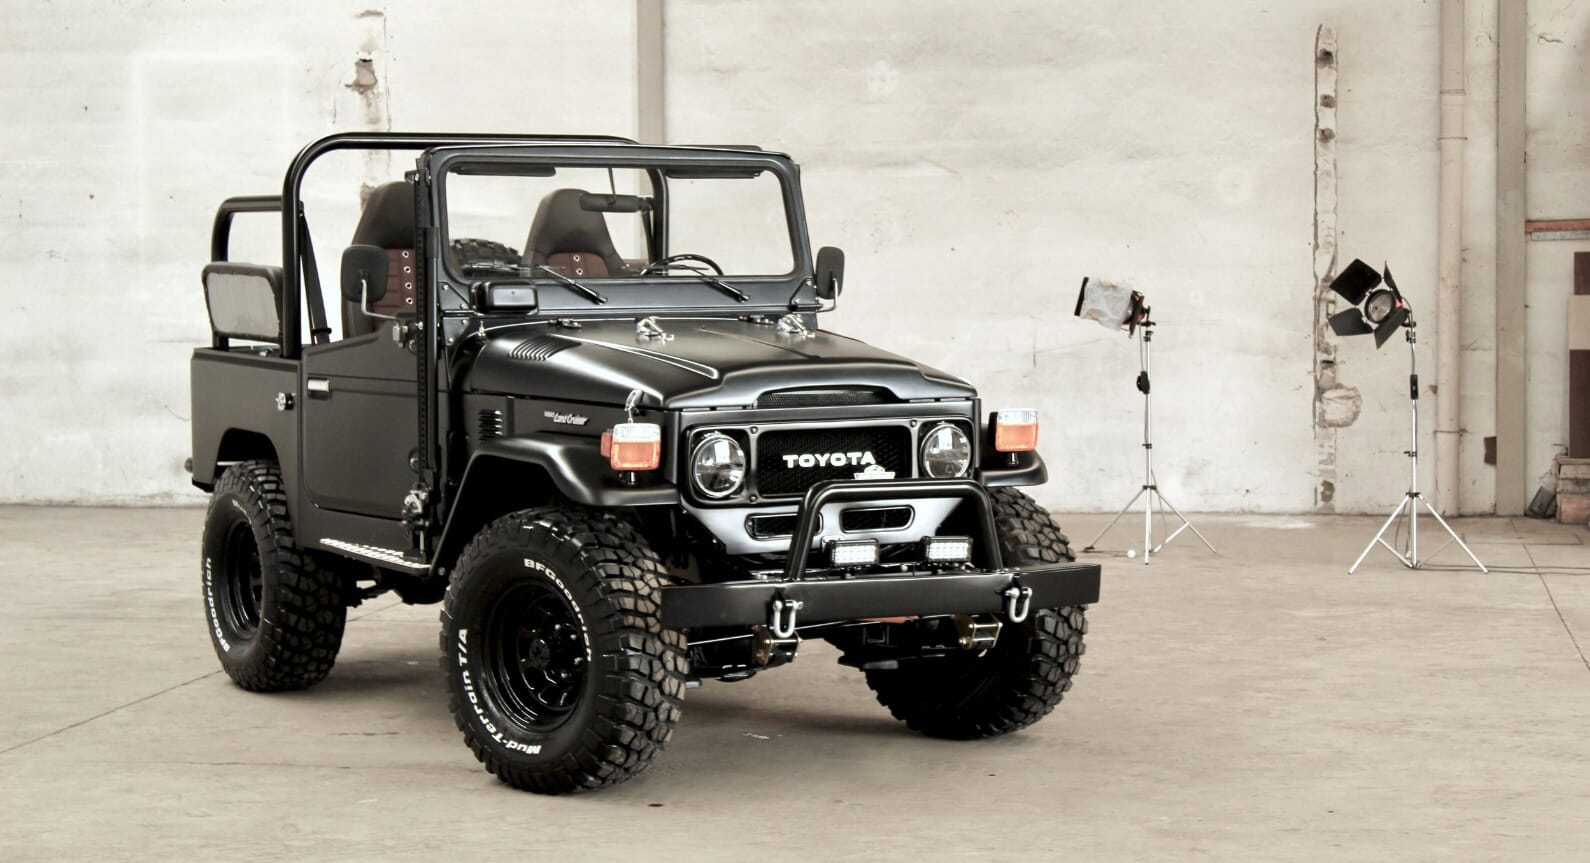 Why Legacy Overland's 1985 Toyota Land Cruiser Is The Ultimate Off-Roader